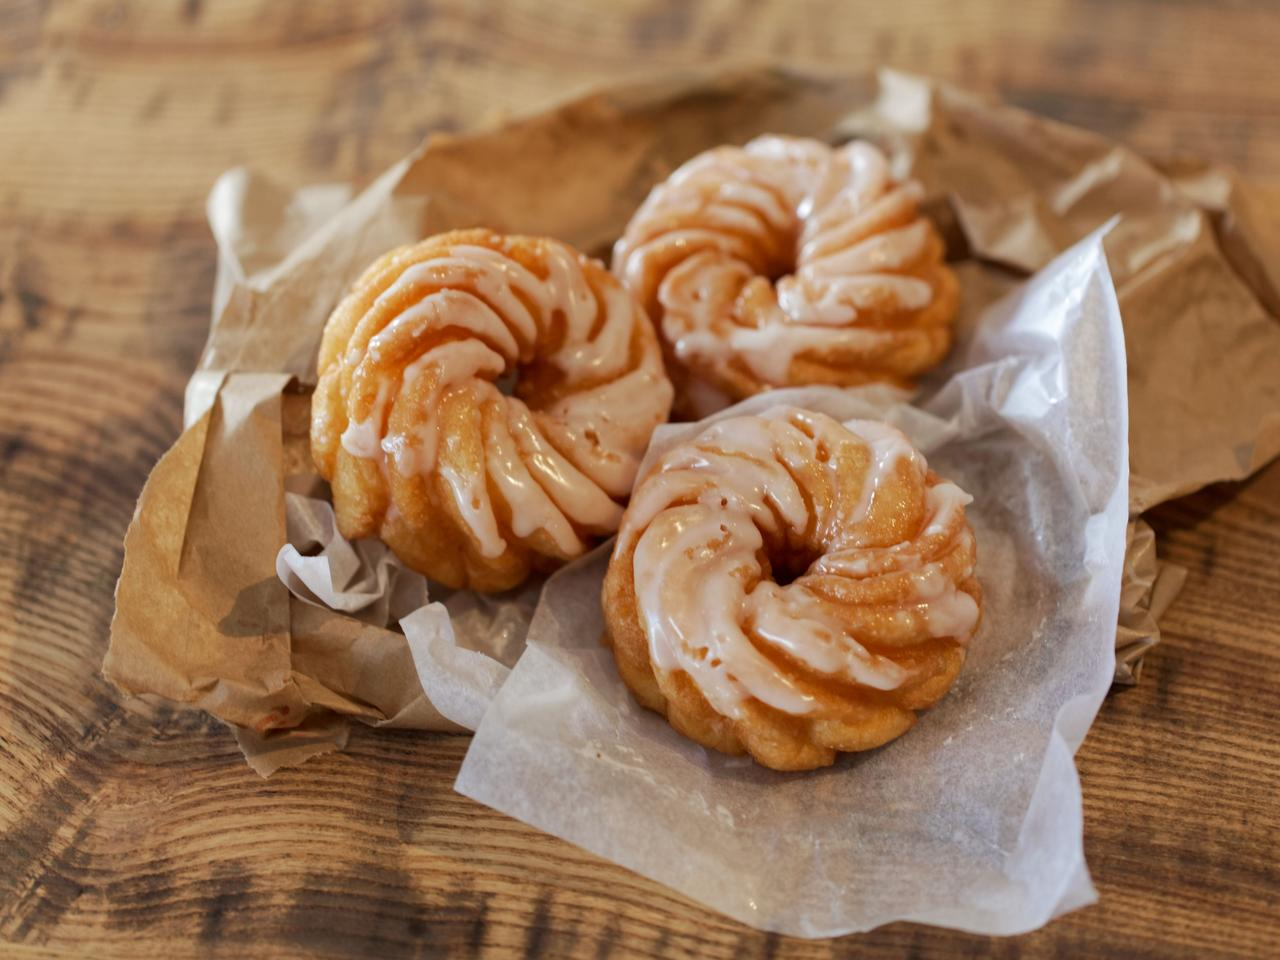 Spritzkuchen (German fried pastry) with brown and white wrapping paper